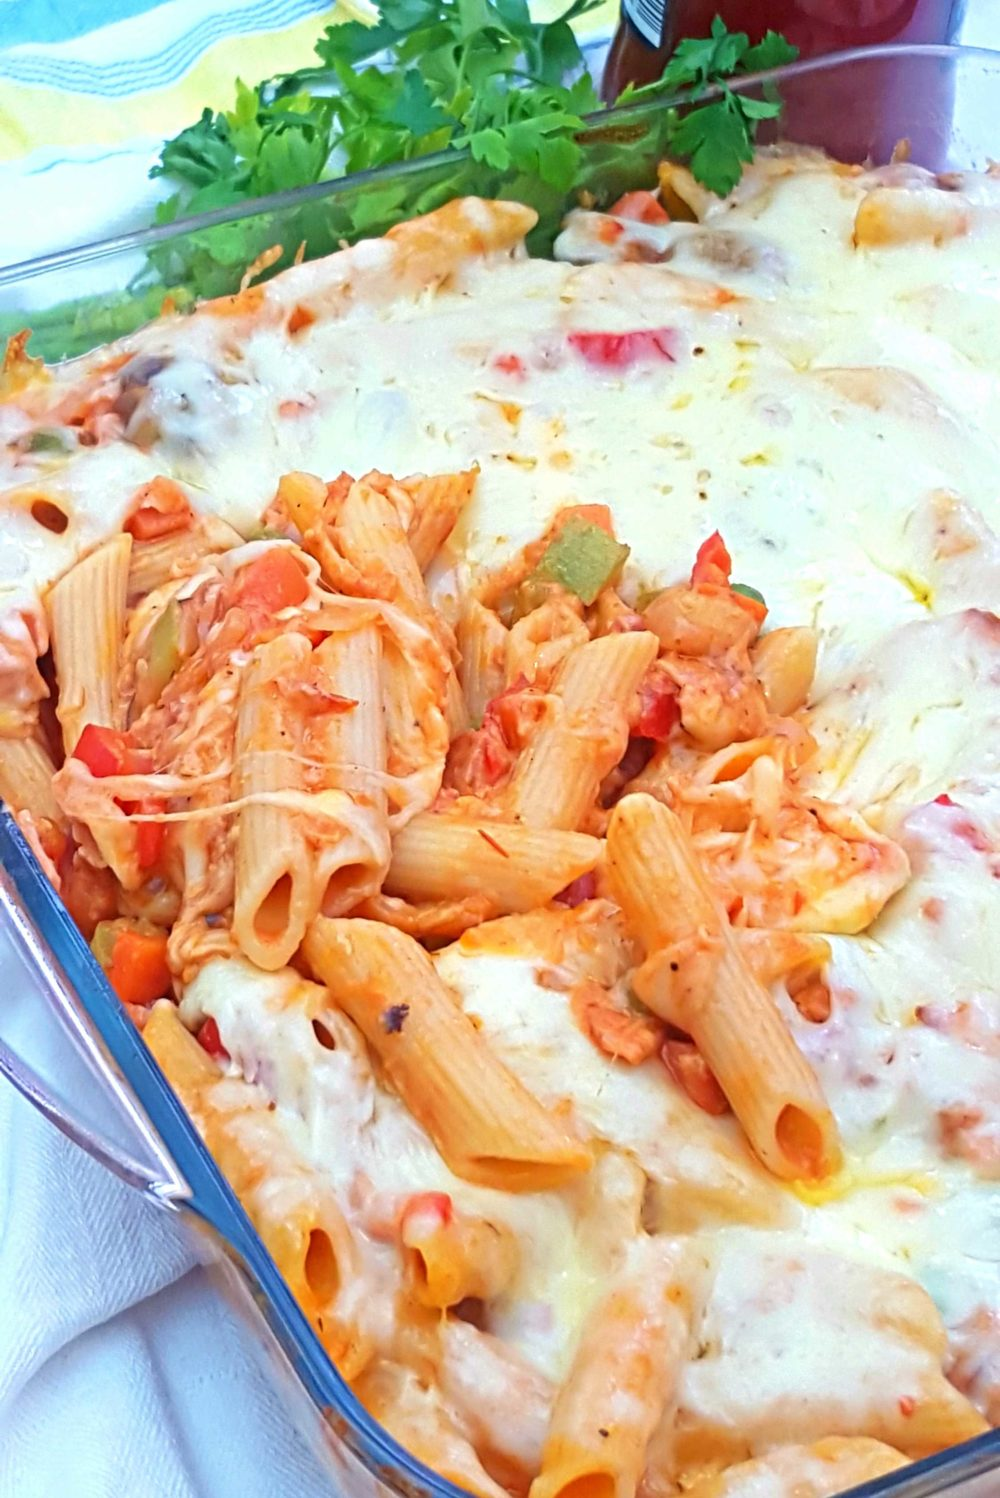 Cheese baked pasta